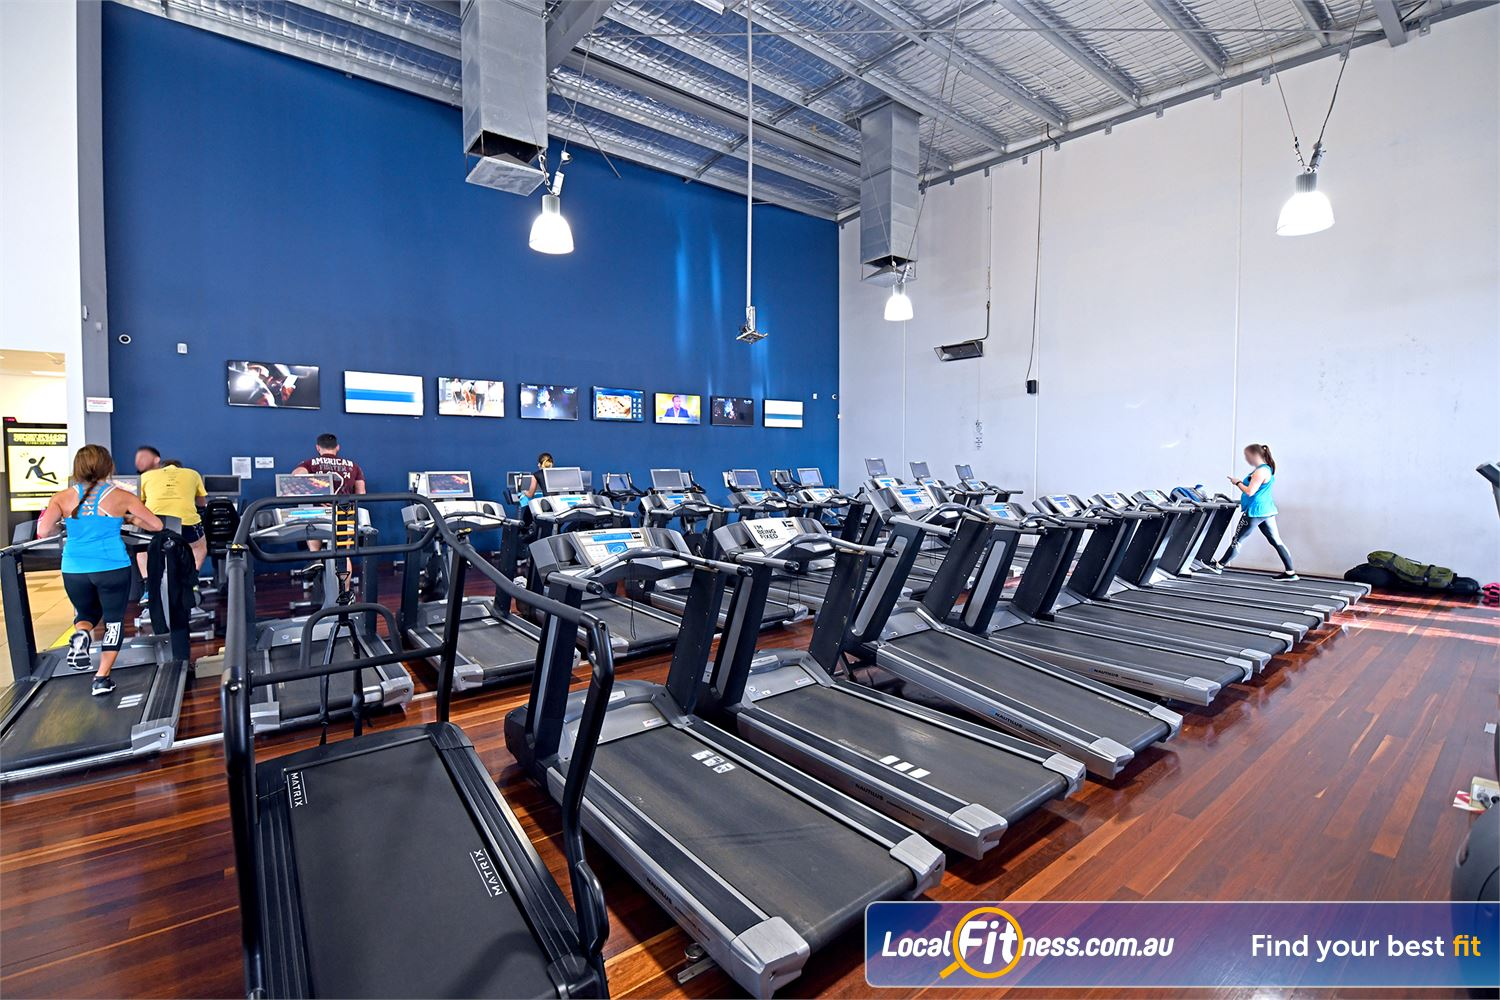 Goodlife Health Clubs Near Newtown Our cardio theatre provides a cinema style feel while you workout.